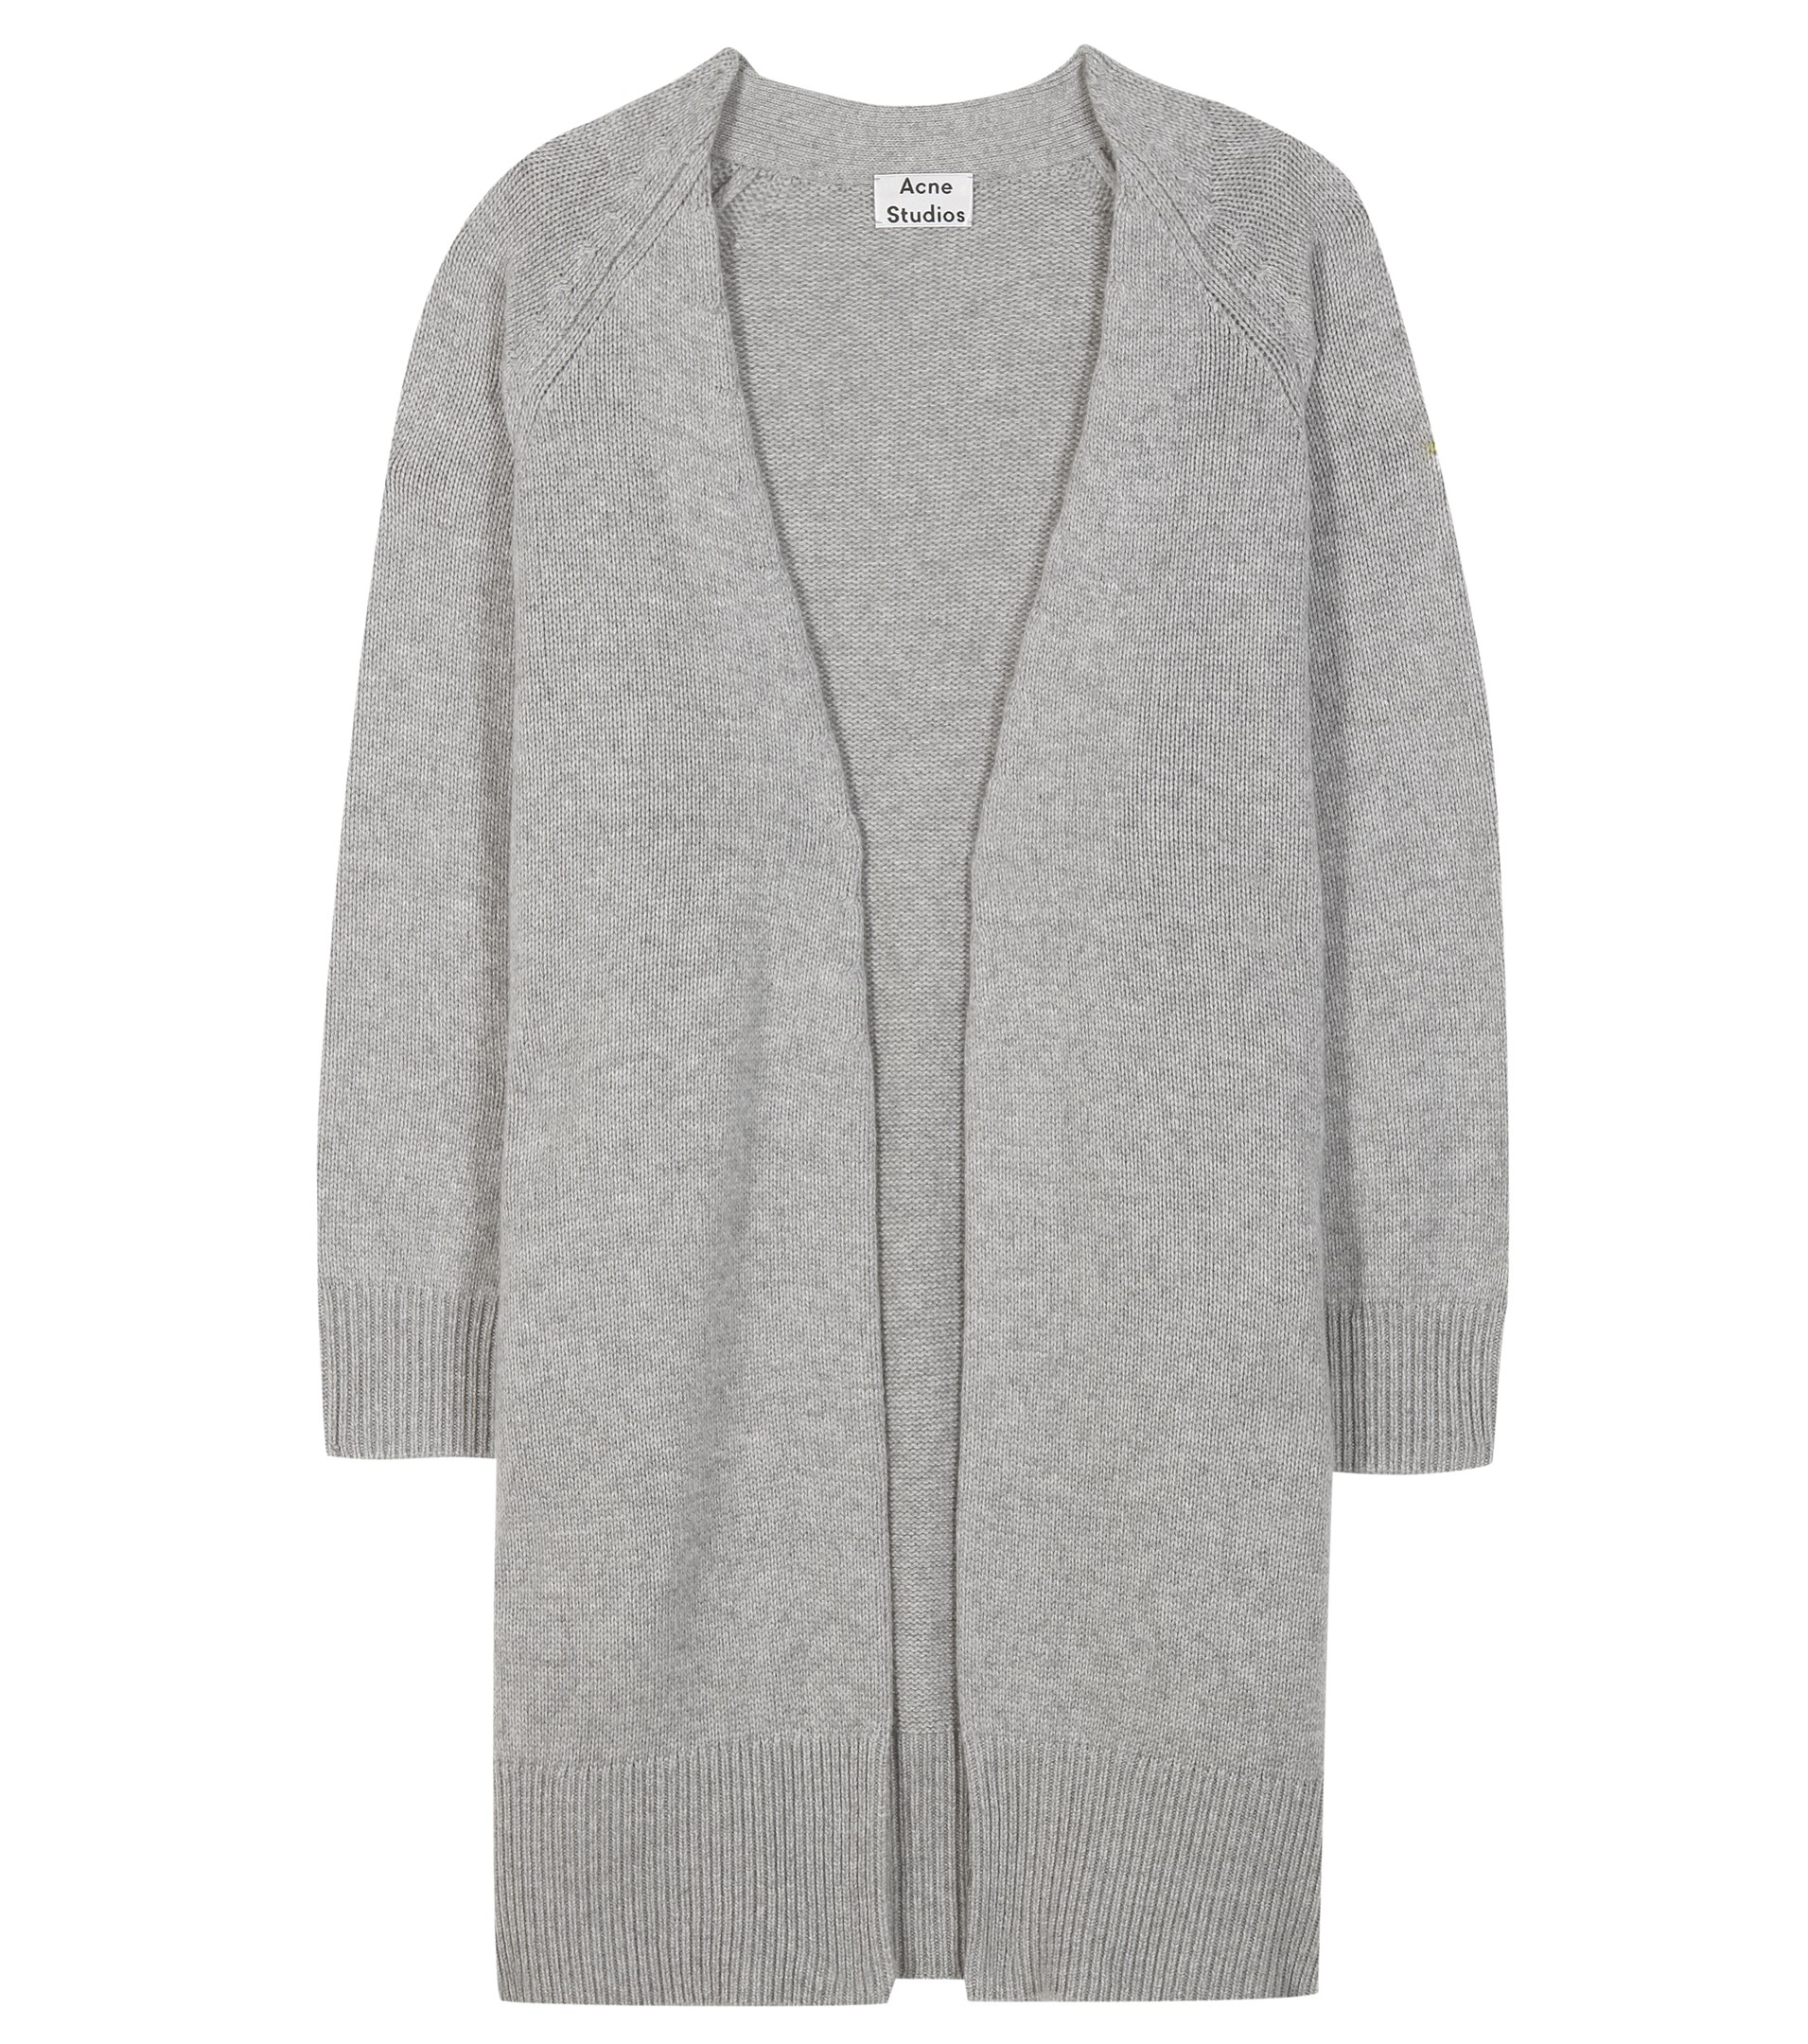 Acne studios Sonya Wool And Cashmere Open Cardigan in Gray | Lyst